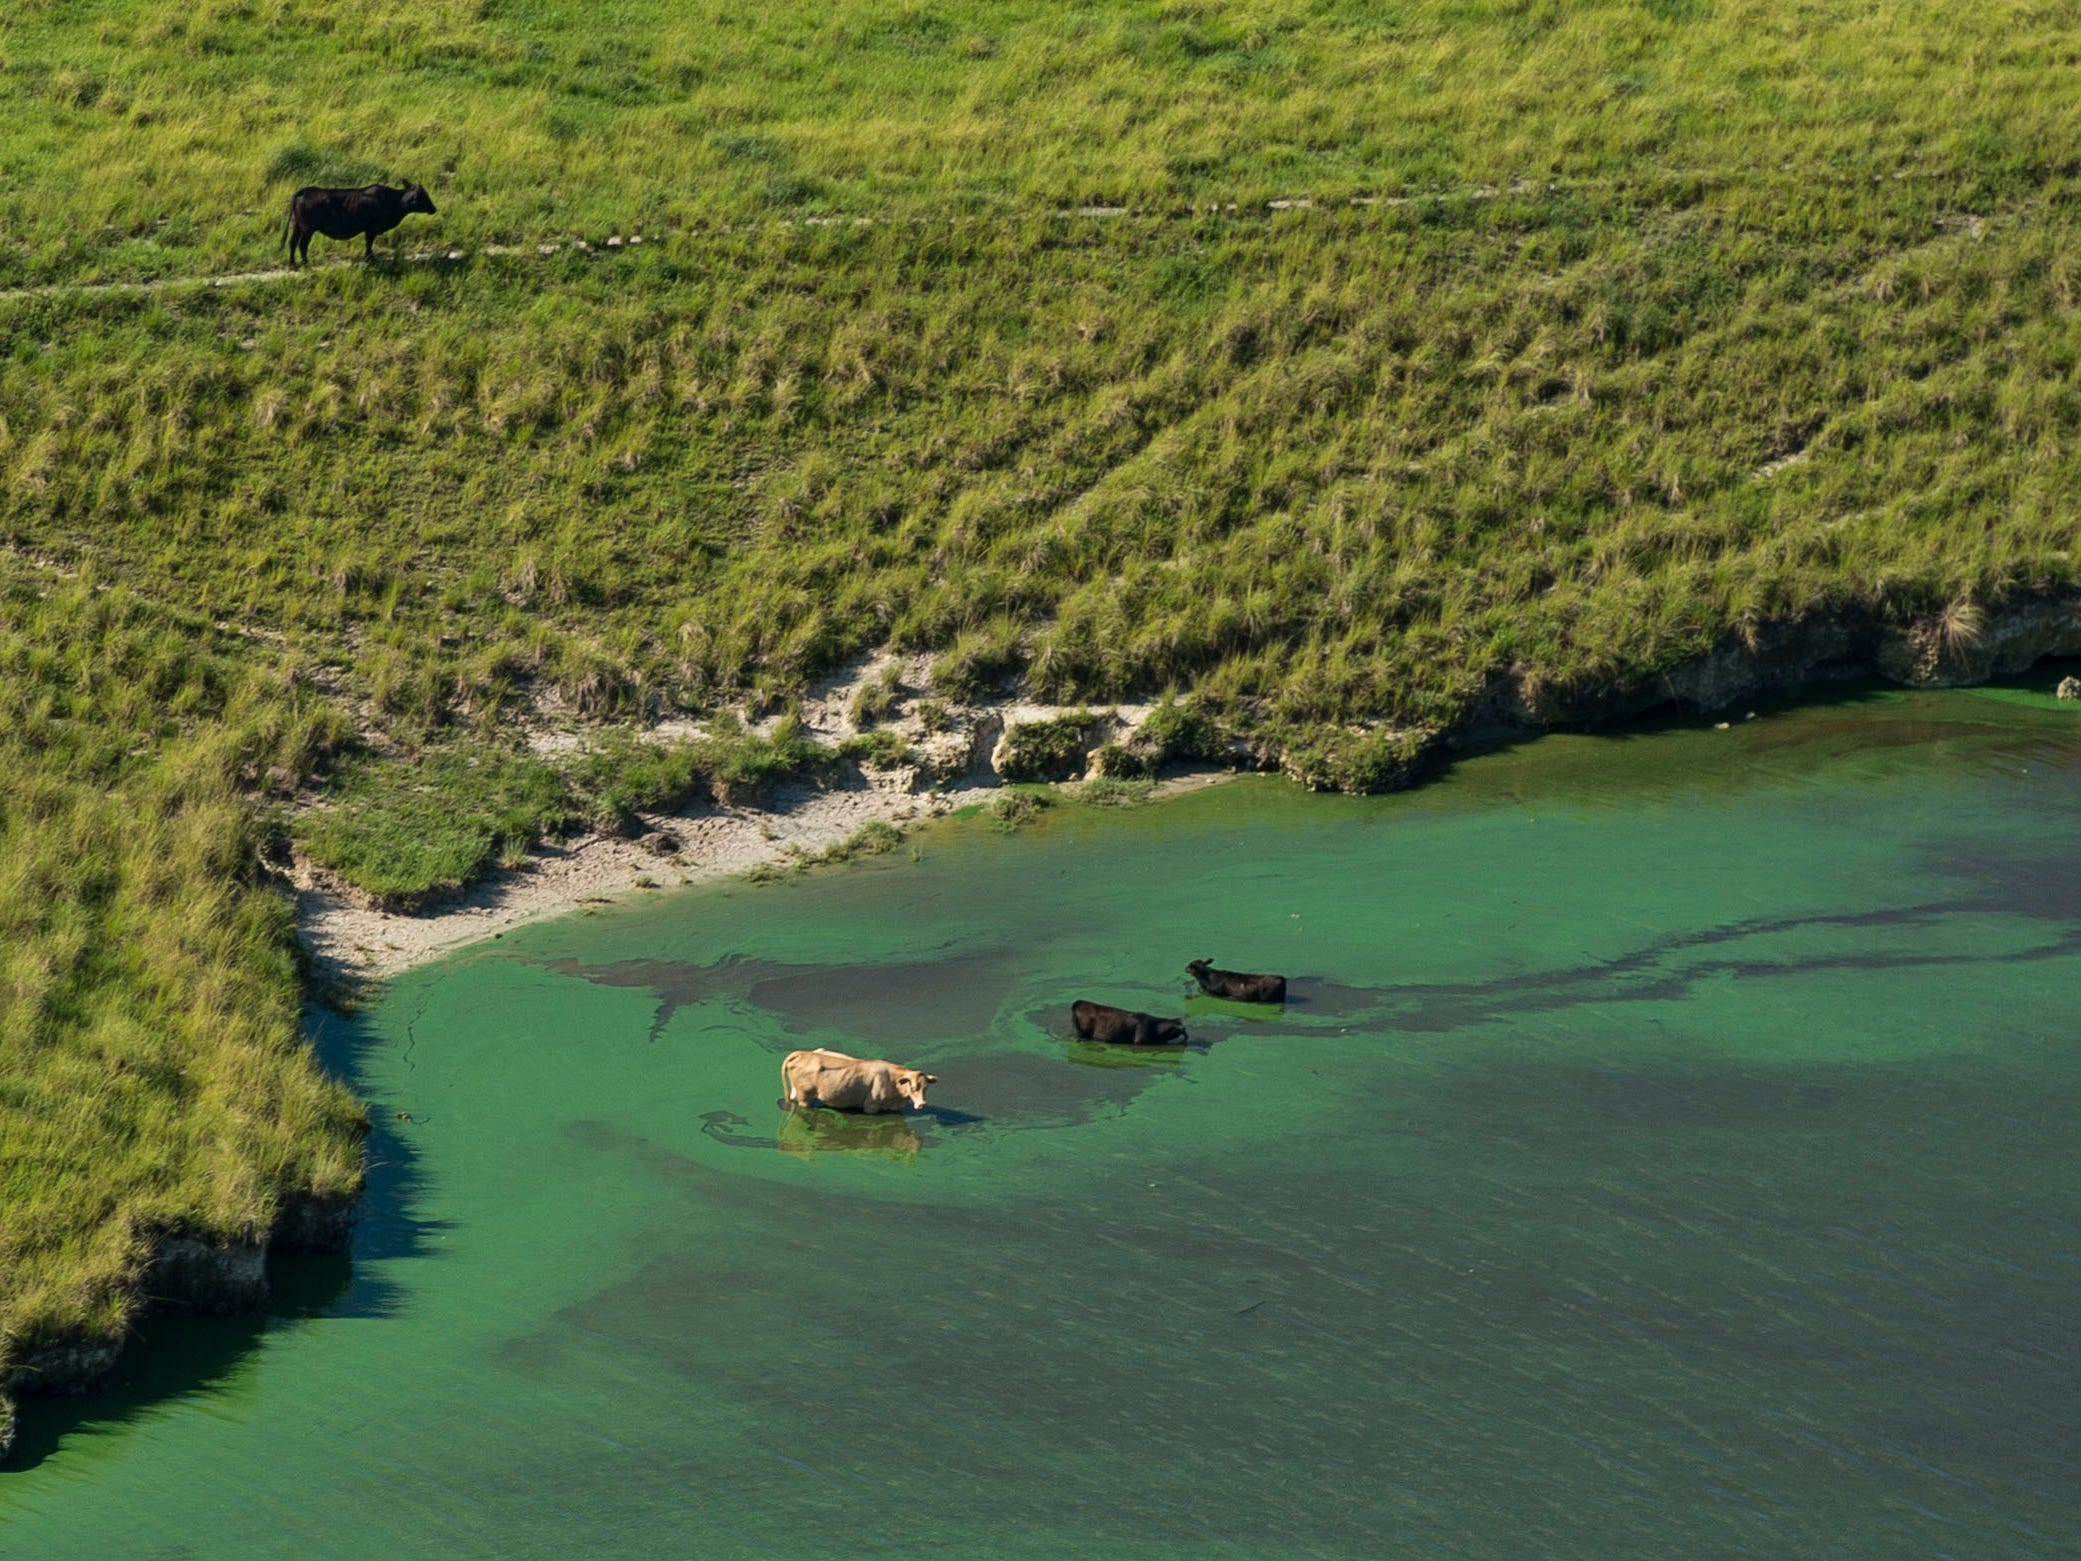 Cattle wades in the algae-covered C-44 Canal on July 5, 2018, in Martin County. Based on satellite images, researchers with NOAA estimate that 90 percent of the 730-square-mile freshwater Lake Okeechobee is covered in algae, proven to be toxic with microcystin through tests conducted by the Florida Department of Environmental Protection. From June 1 to July 5, 2018, about 25 billion gallons of Lake Okeechobee water had been discharged from the gates at the St. Lucie Lock and Dam into the St. Lucie River, concerning residents and damaging local businesses.